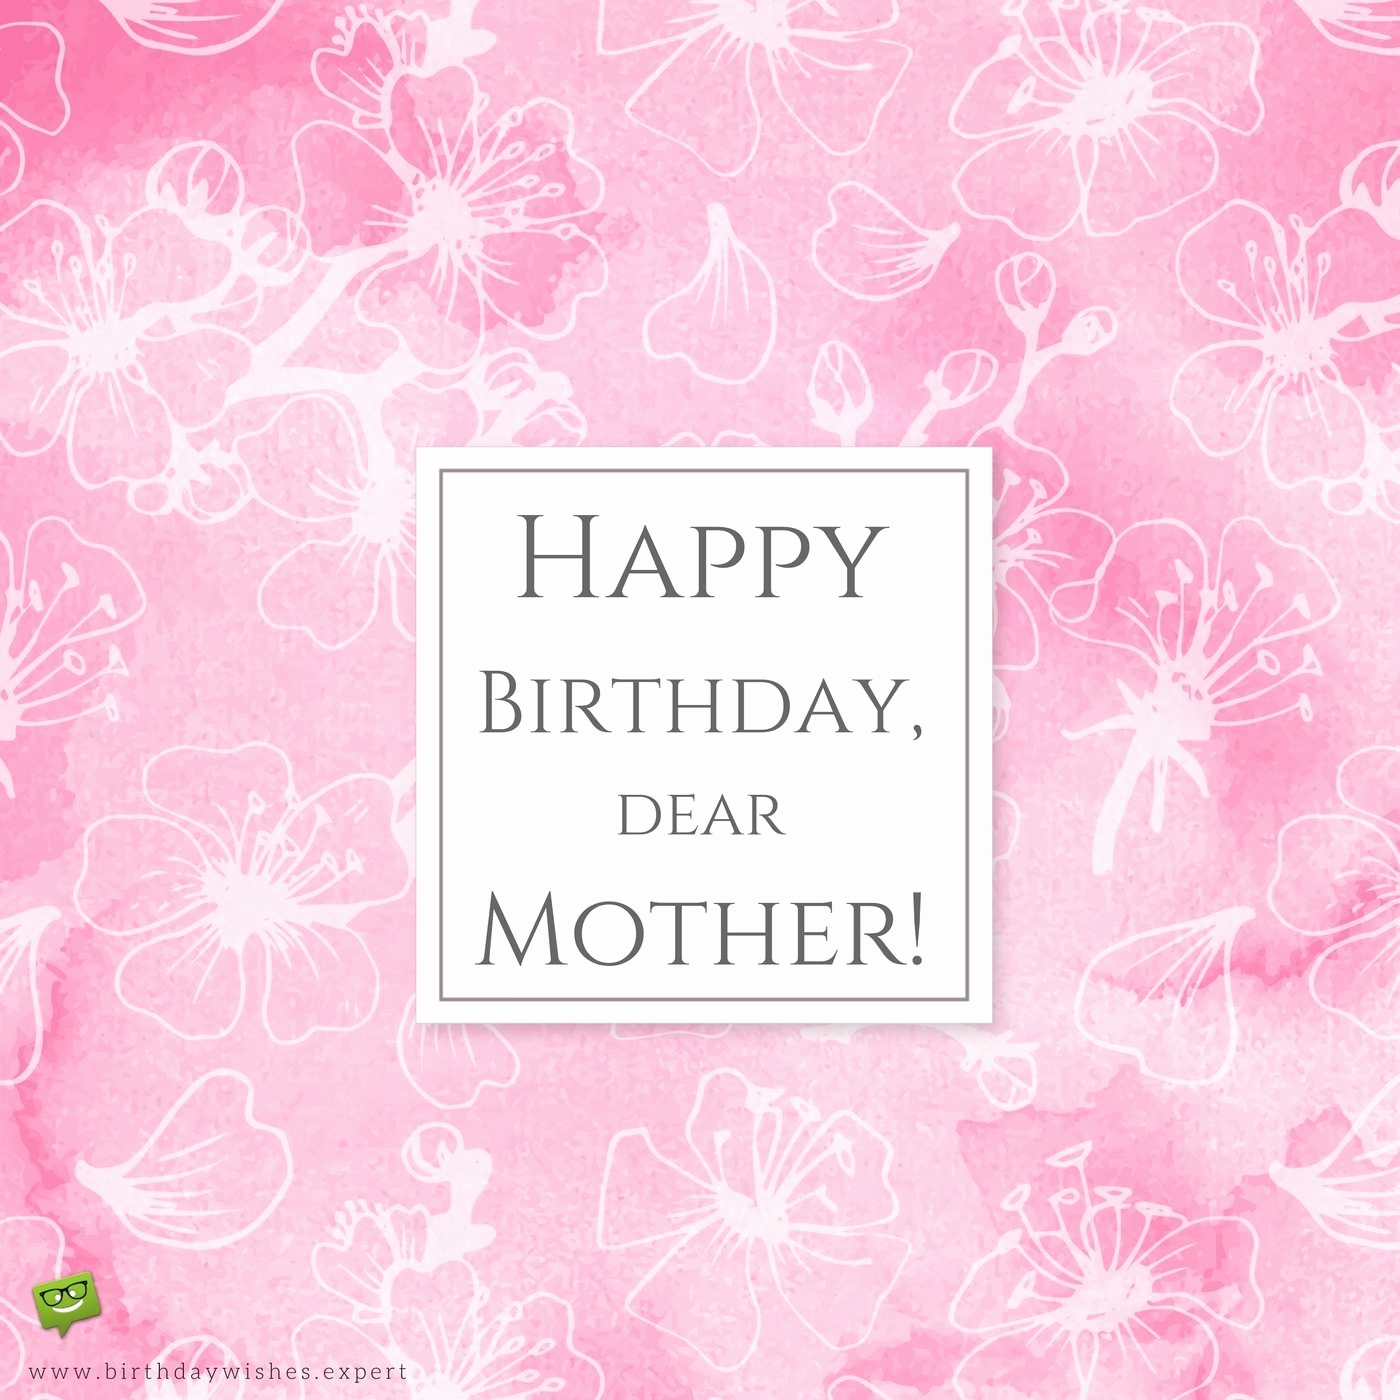 free printable foldable birthday cards for mom ; free-text-birthday-cards-luxury-best-mom-in-the-world-of-free-text-birthday-cards